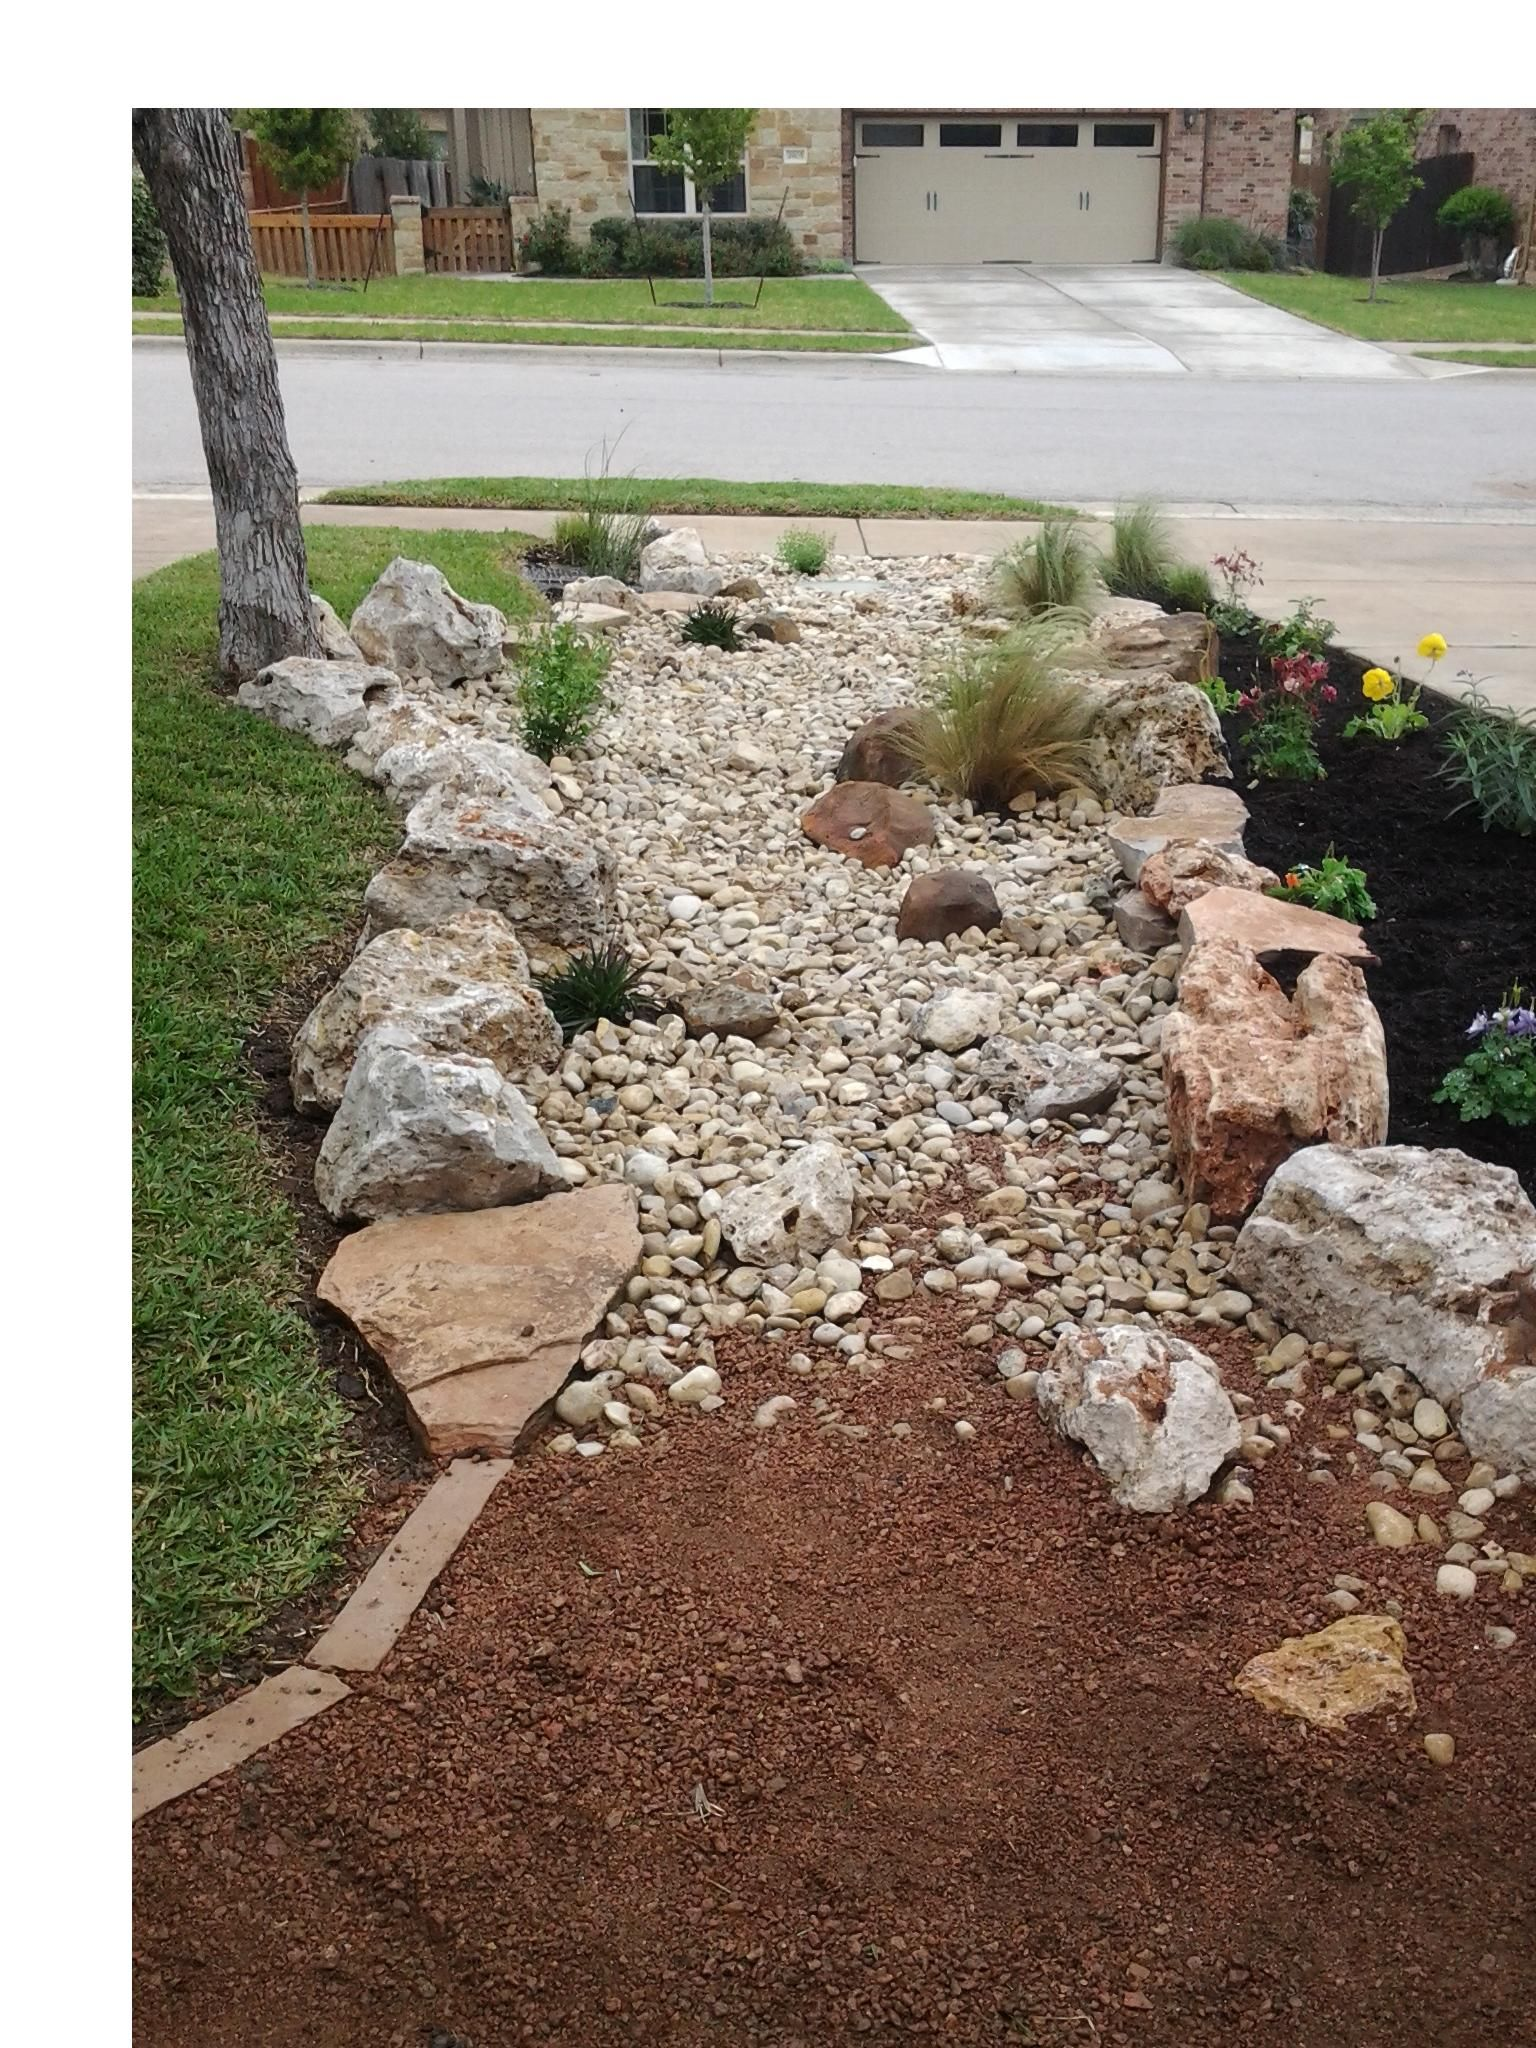 Dry creek bed between two houses with a decomposed granite wash